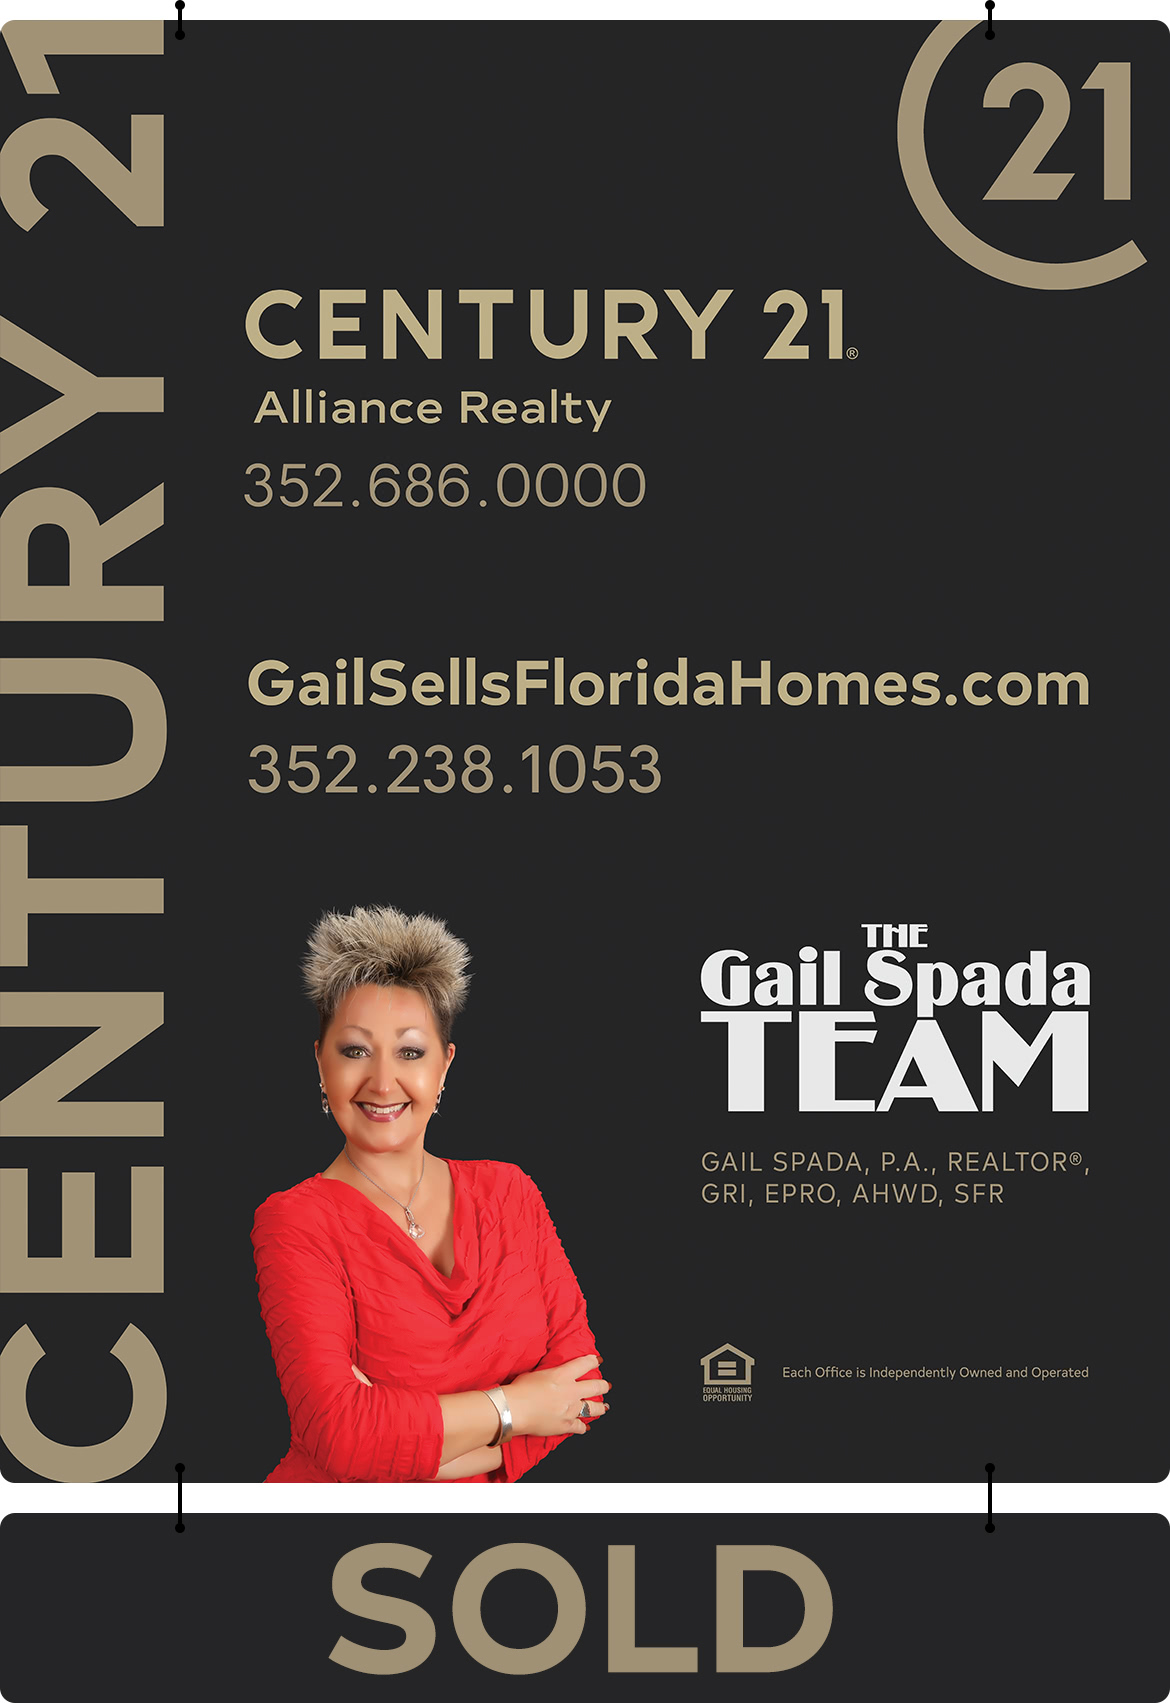 Get your home sold with THE Gail Spada TEAM